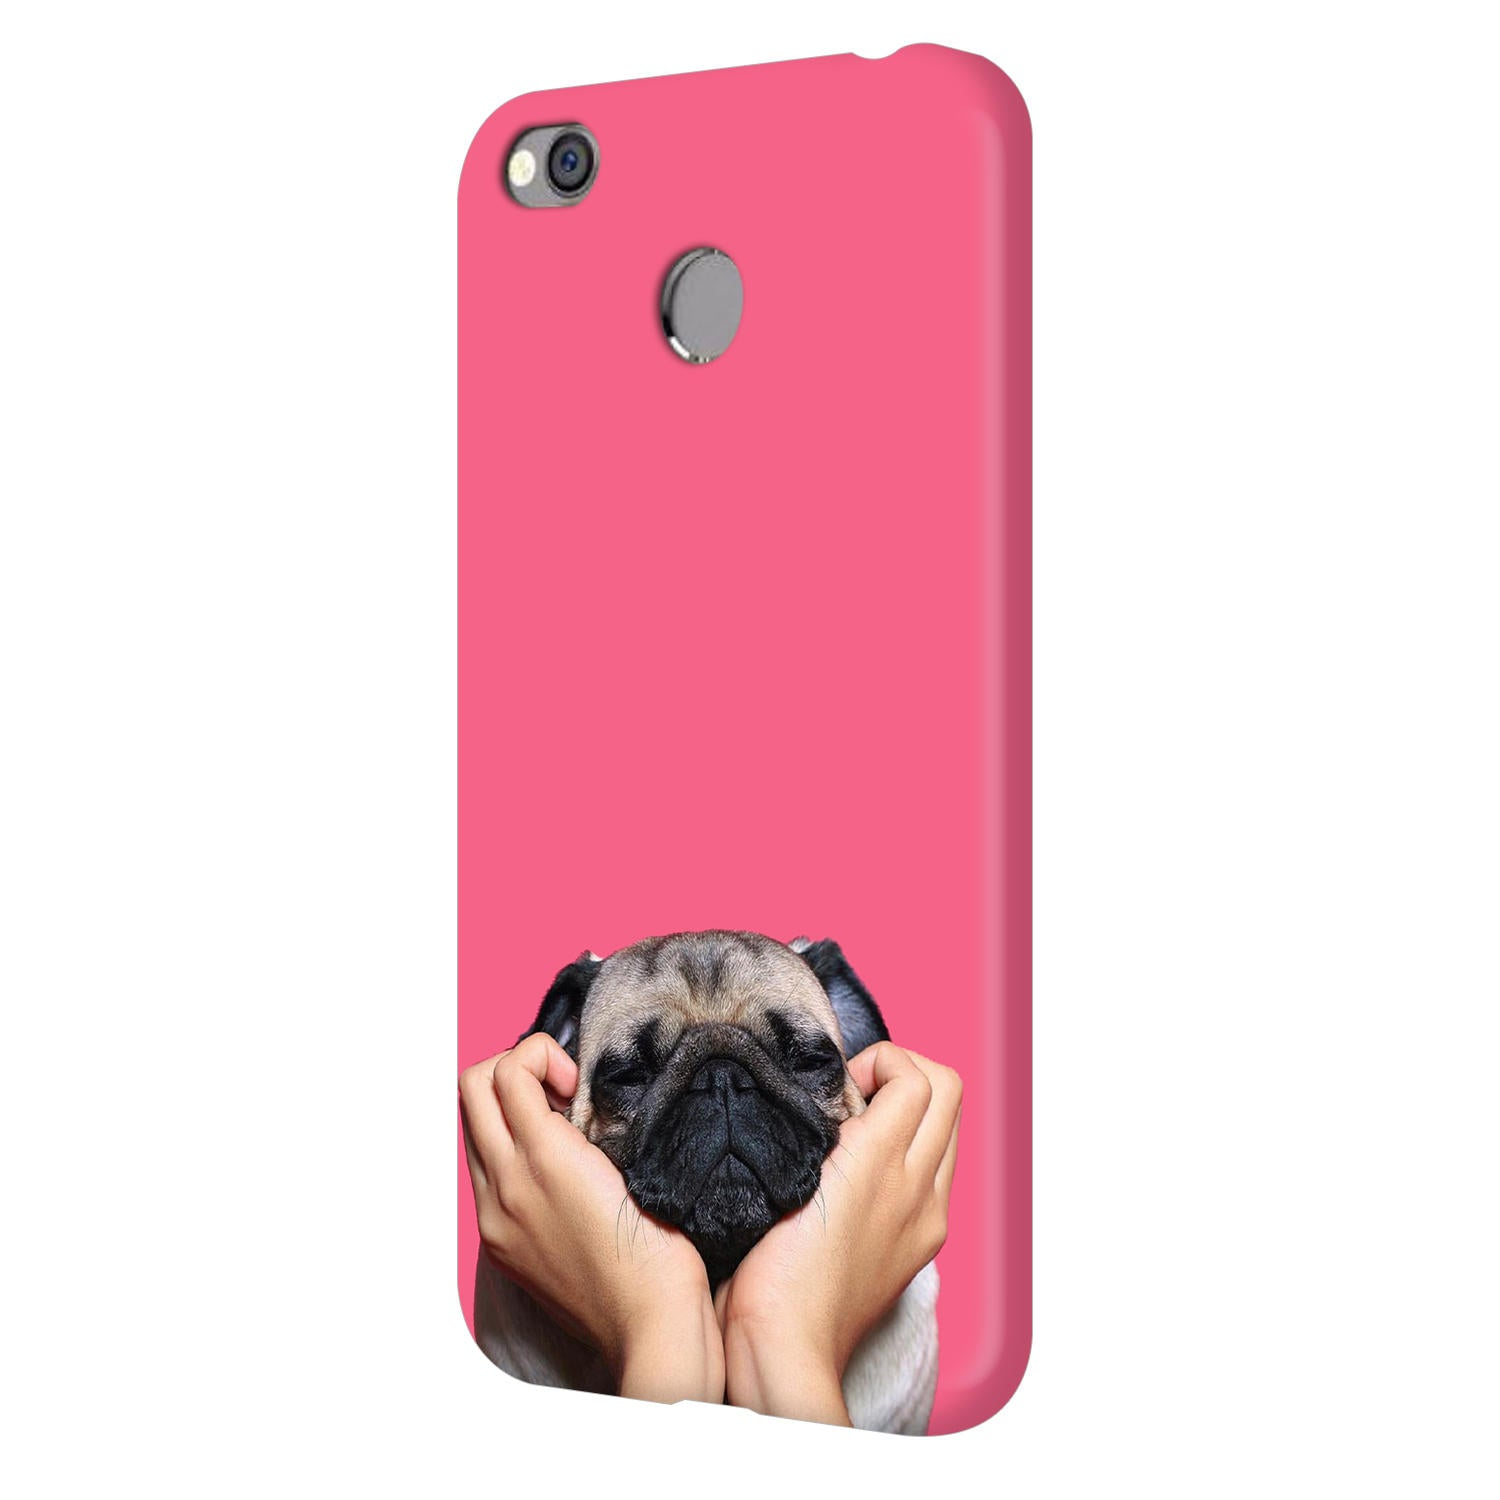 Funny Pug Dog Lovers Vivo V7 Plus Mobile Cover Case - MADANYU